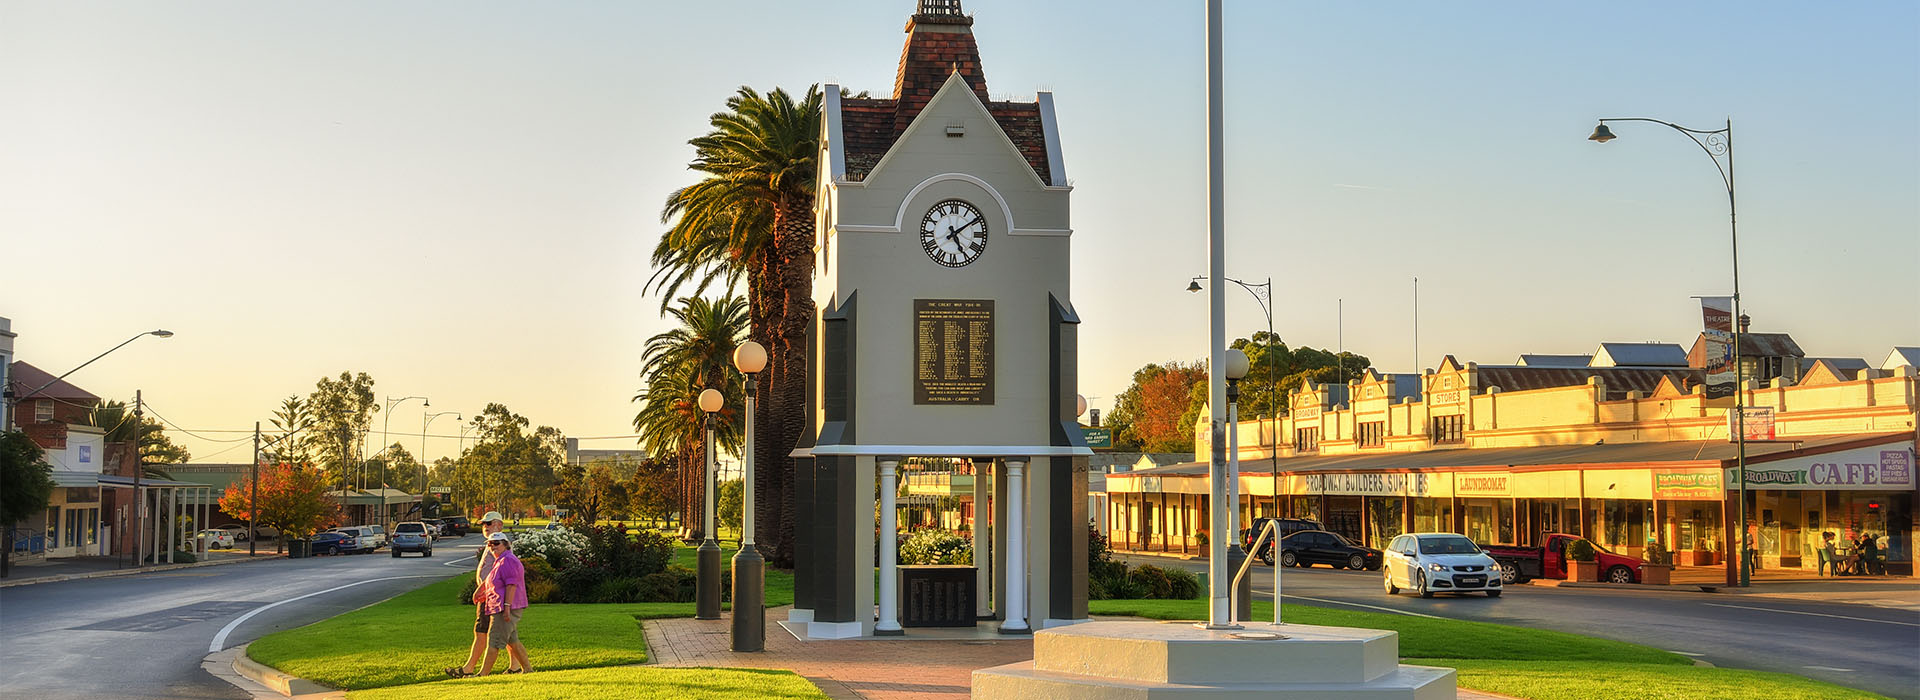 Things to do and see in Junee